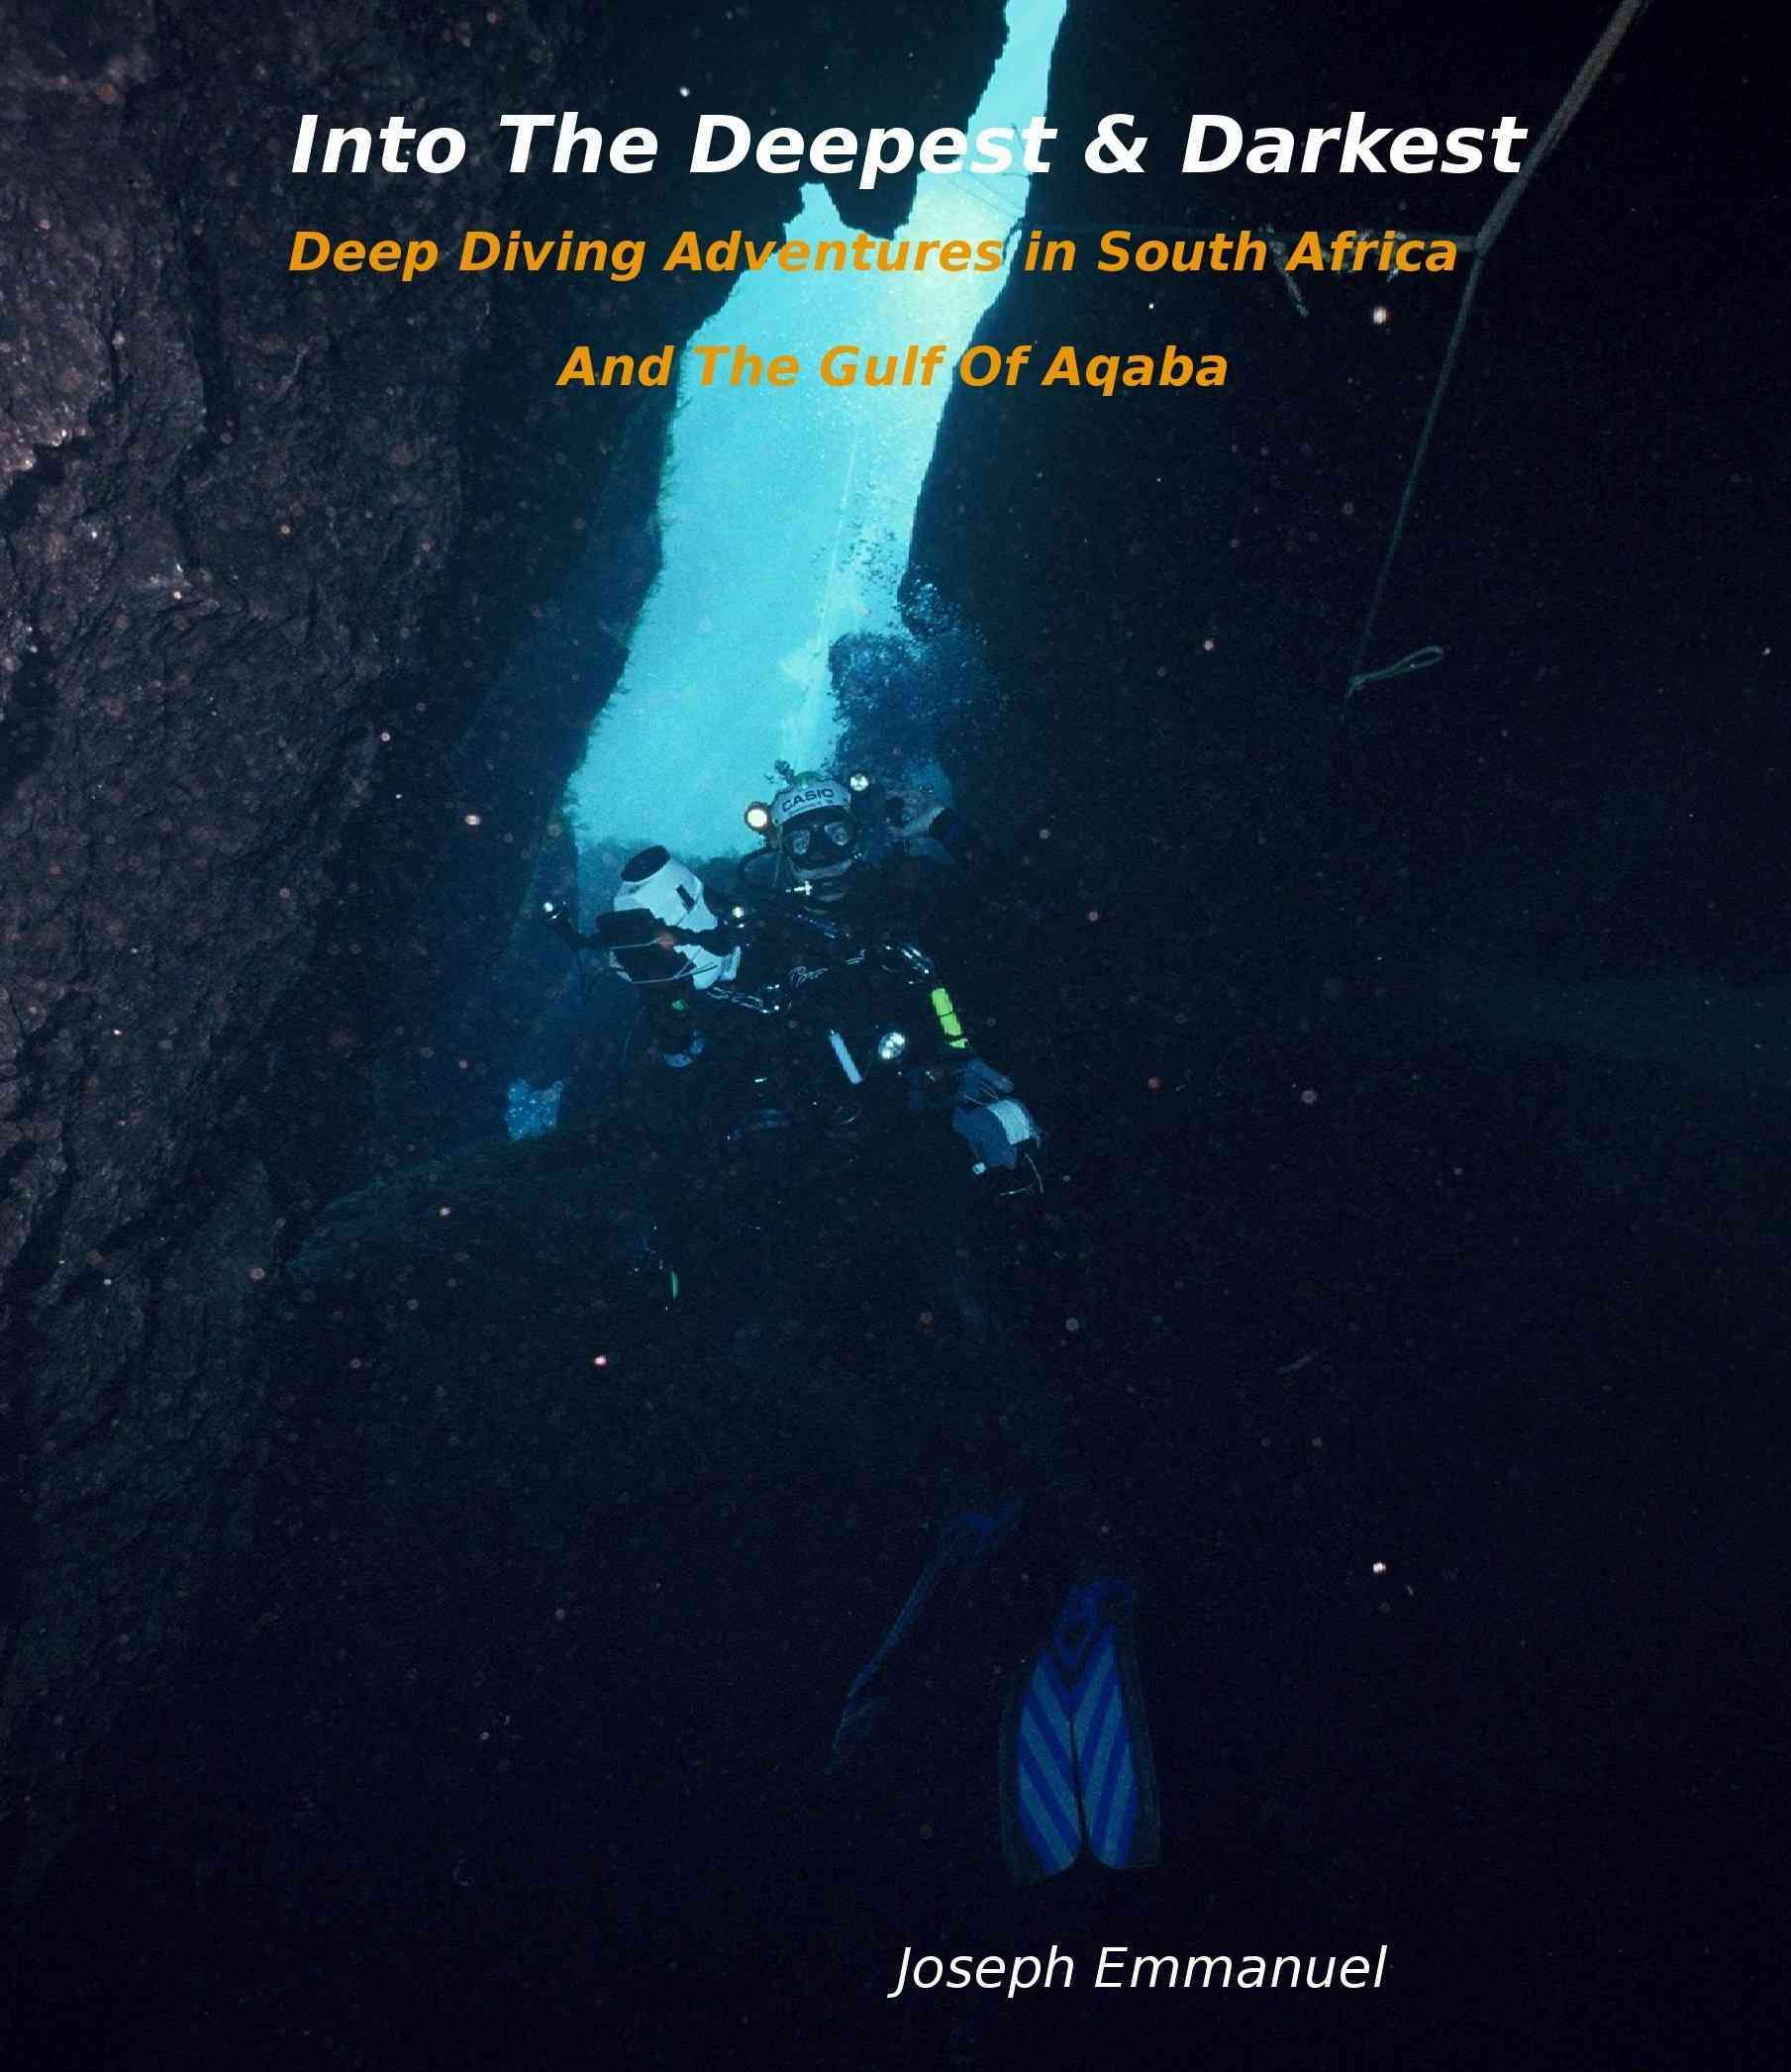 Into the Deepest and Darkest: Deep Diving Adventures in South Africa and the Gulf of Aqaba